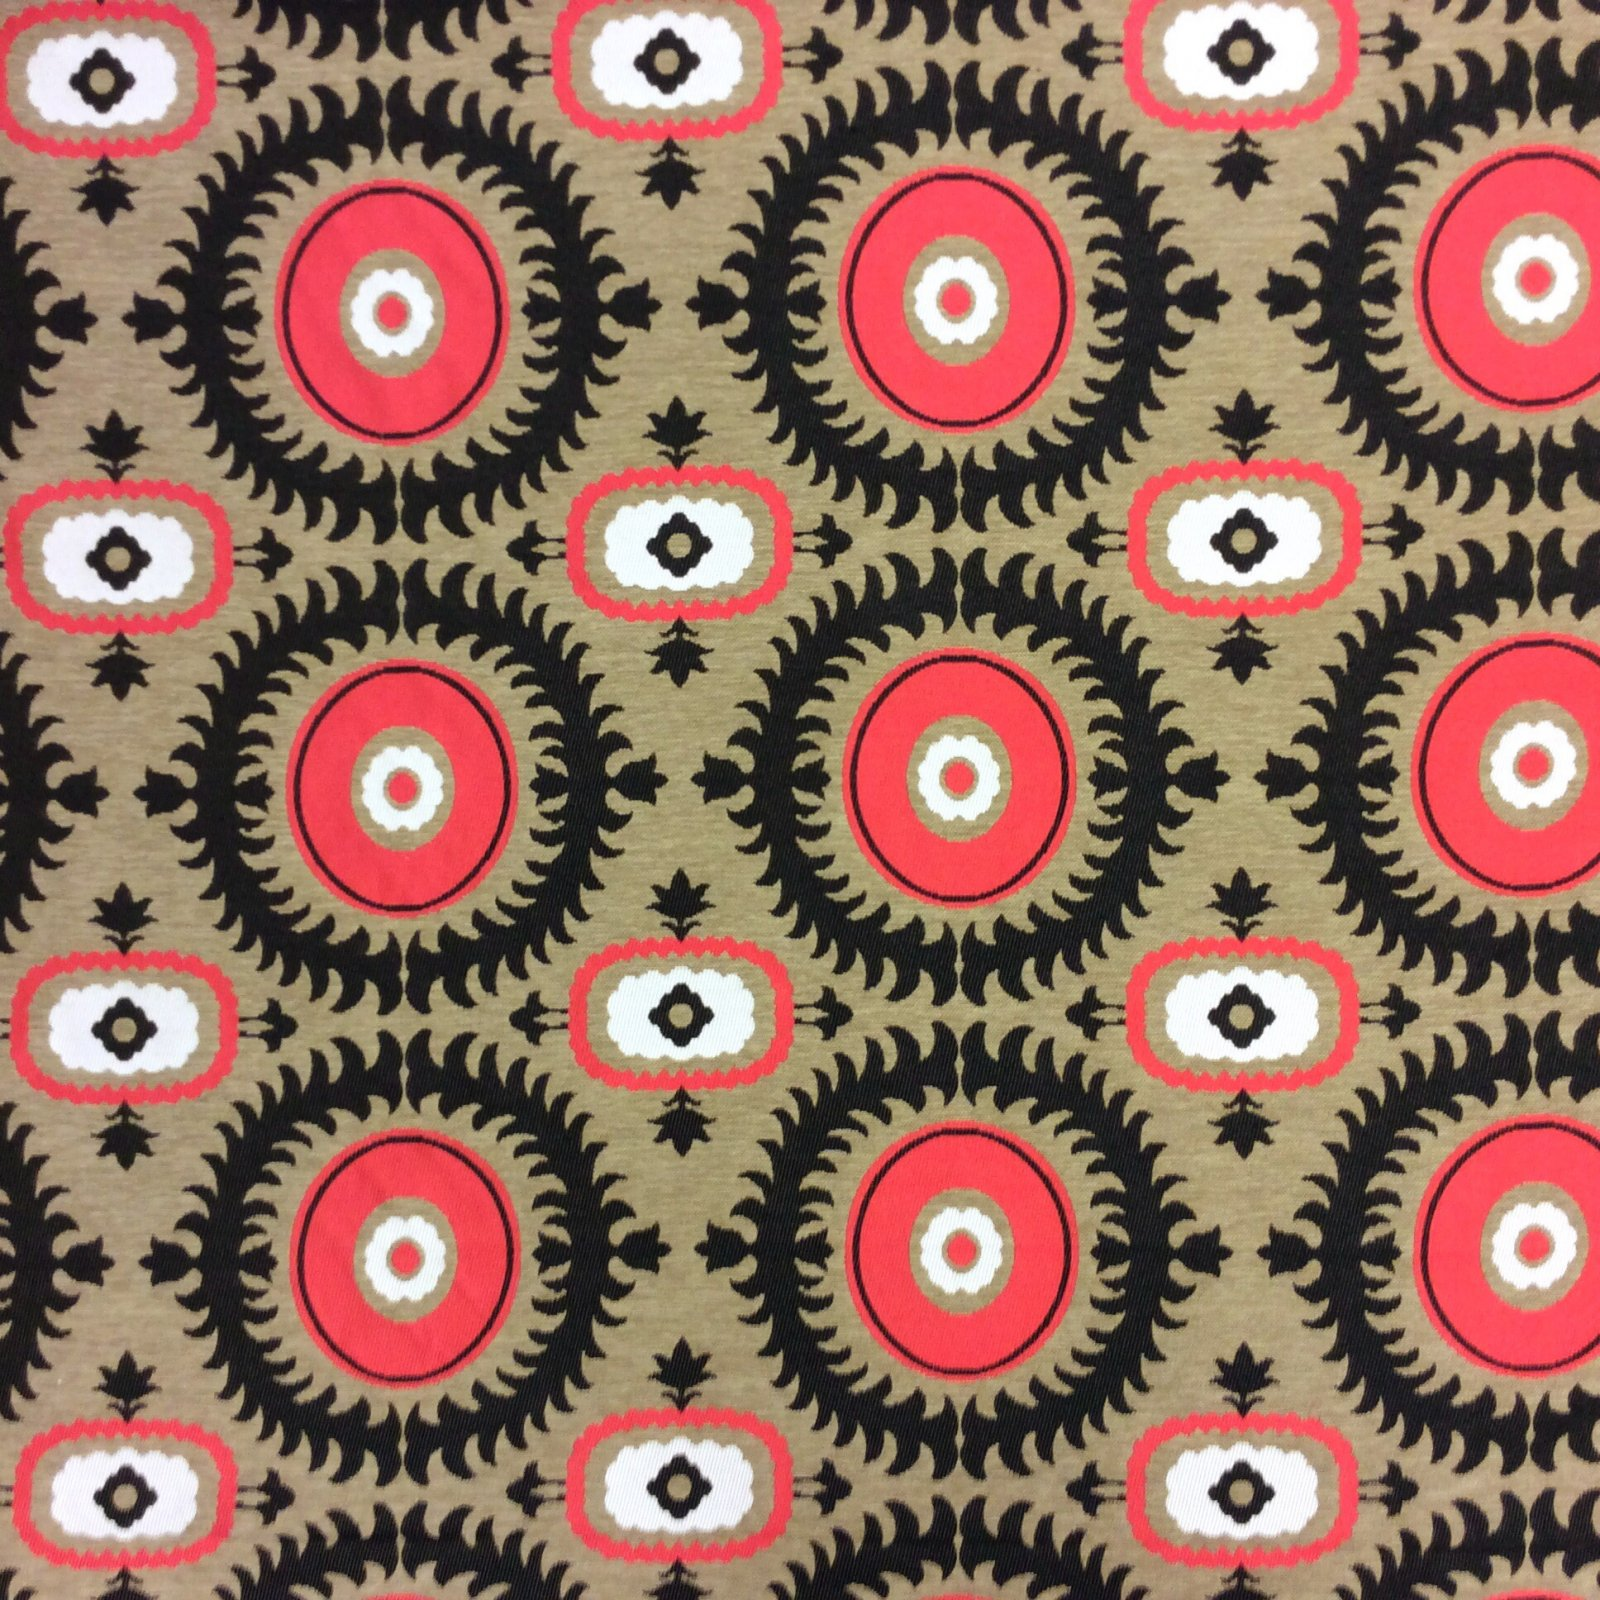 Suzani Magical Medallion Tapestry Woven Cotton Upholstery Fabric 411FG